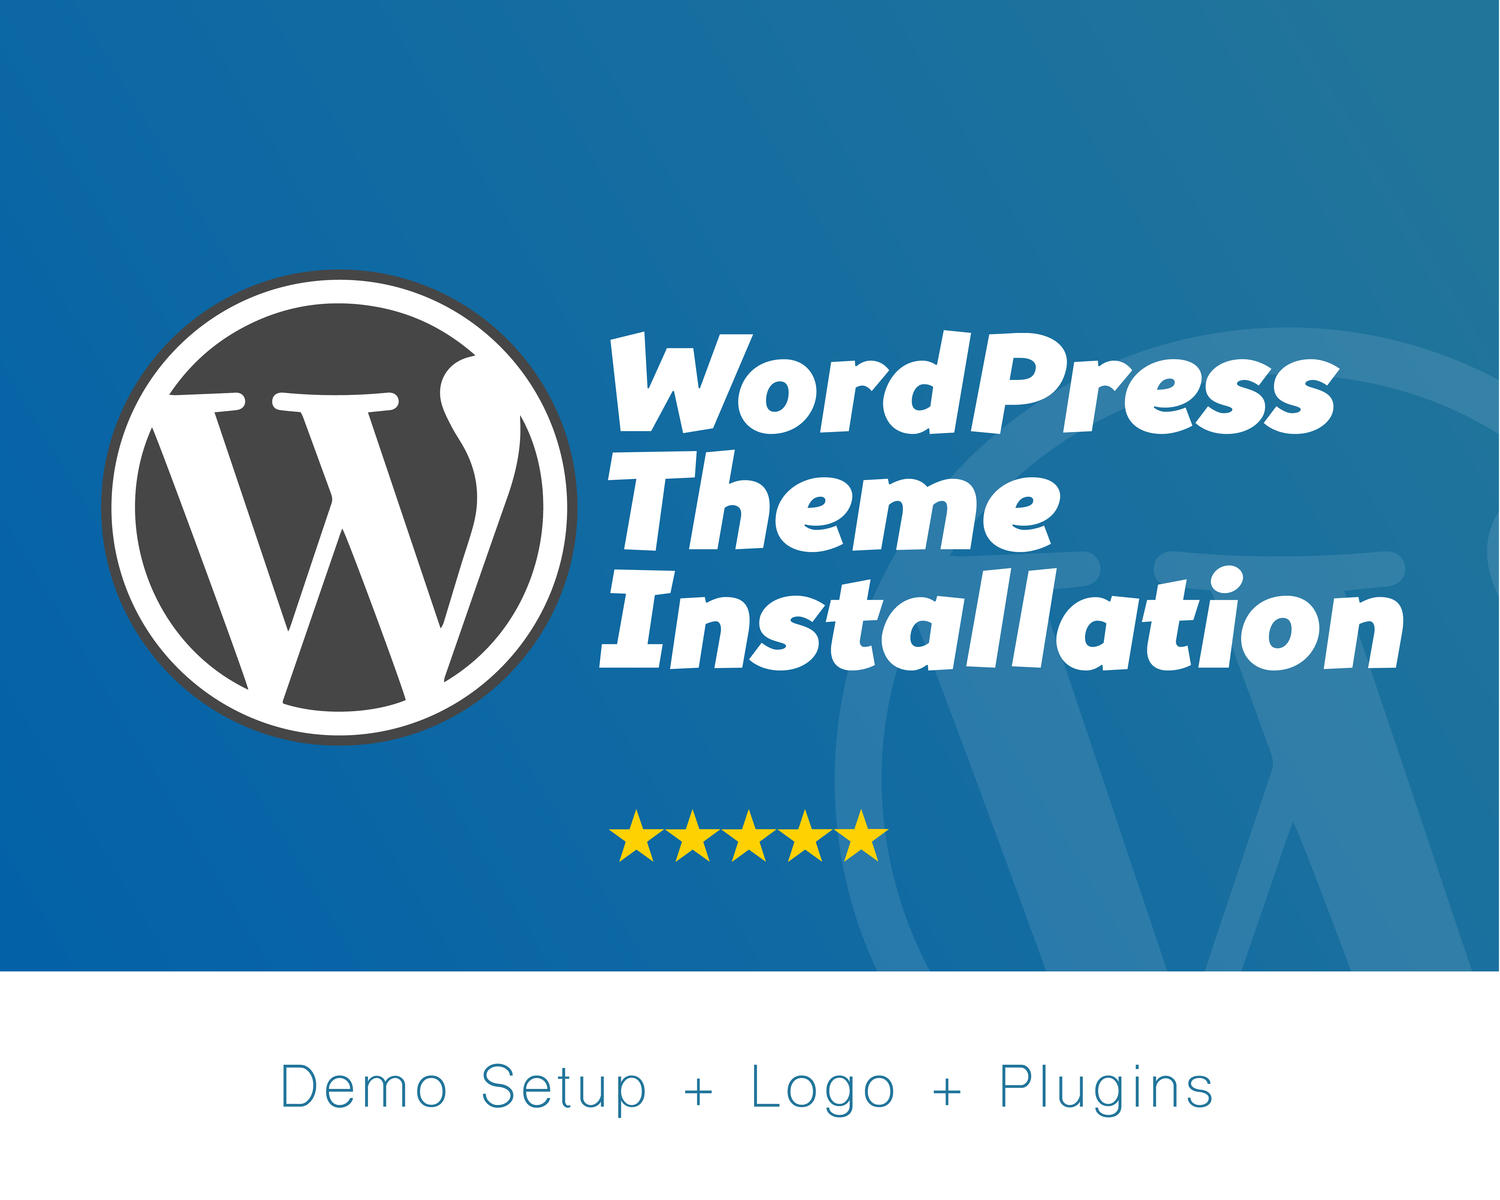 WordPress Theme Installation and Demo Setup (+Logo+Plugins) by Wawuf - 71850